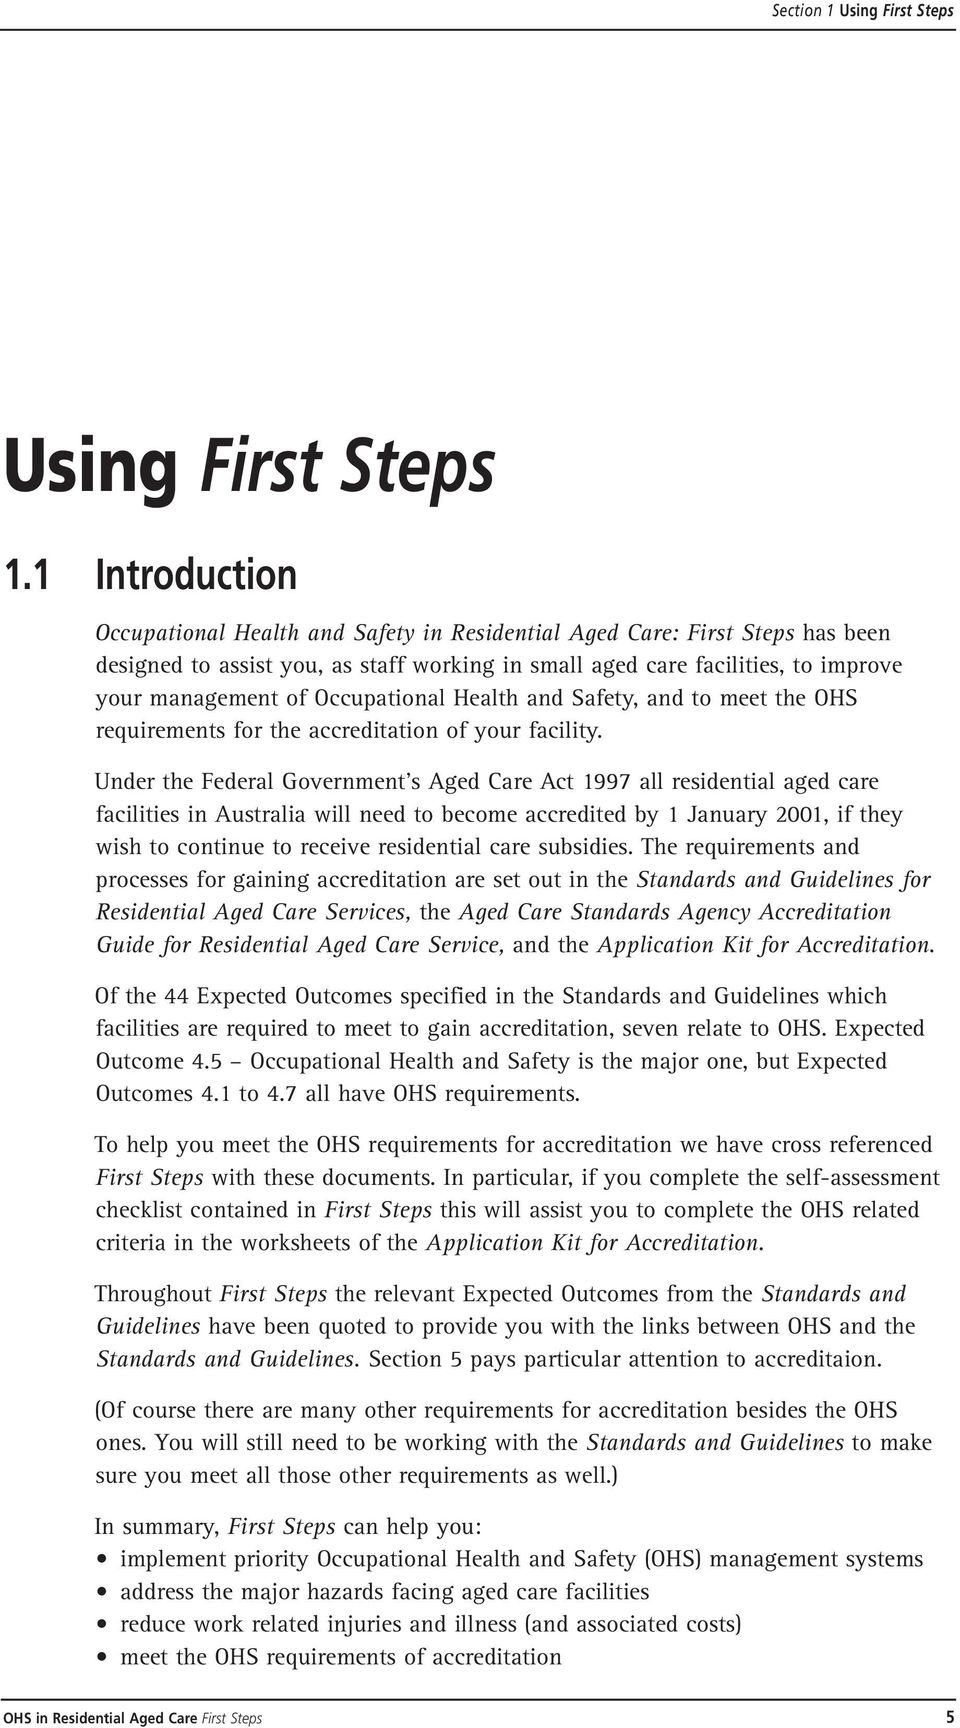 Occupational health and safety in residential aged care first steps occupational health and safety and to meet the ohs requirements for the accreditation of your fandeluxe Choice Image